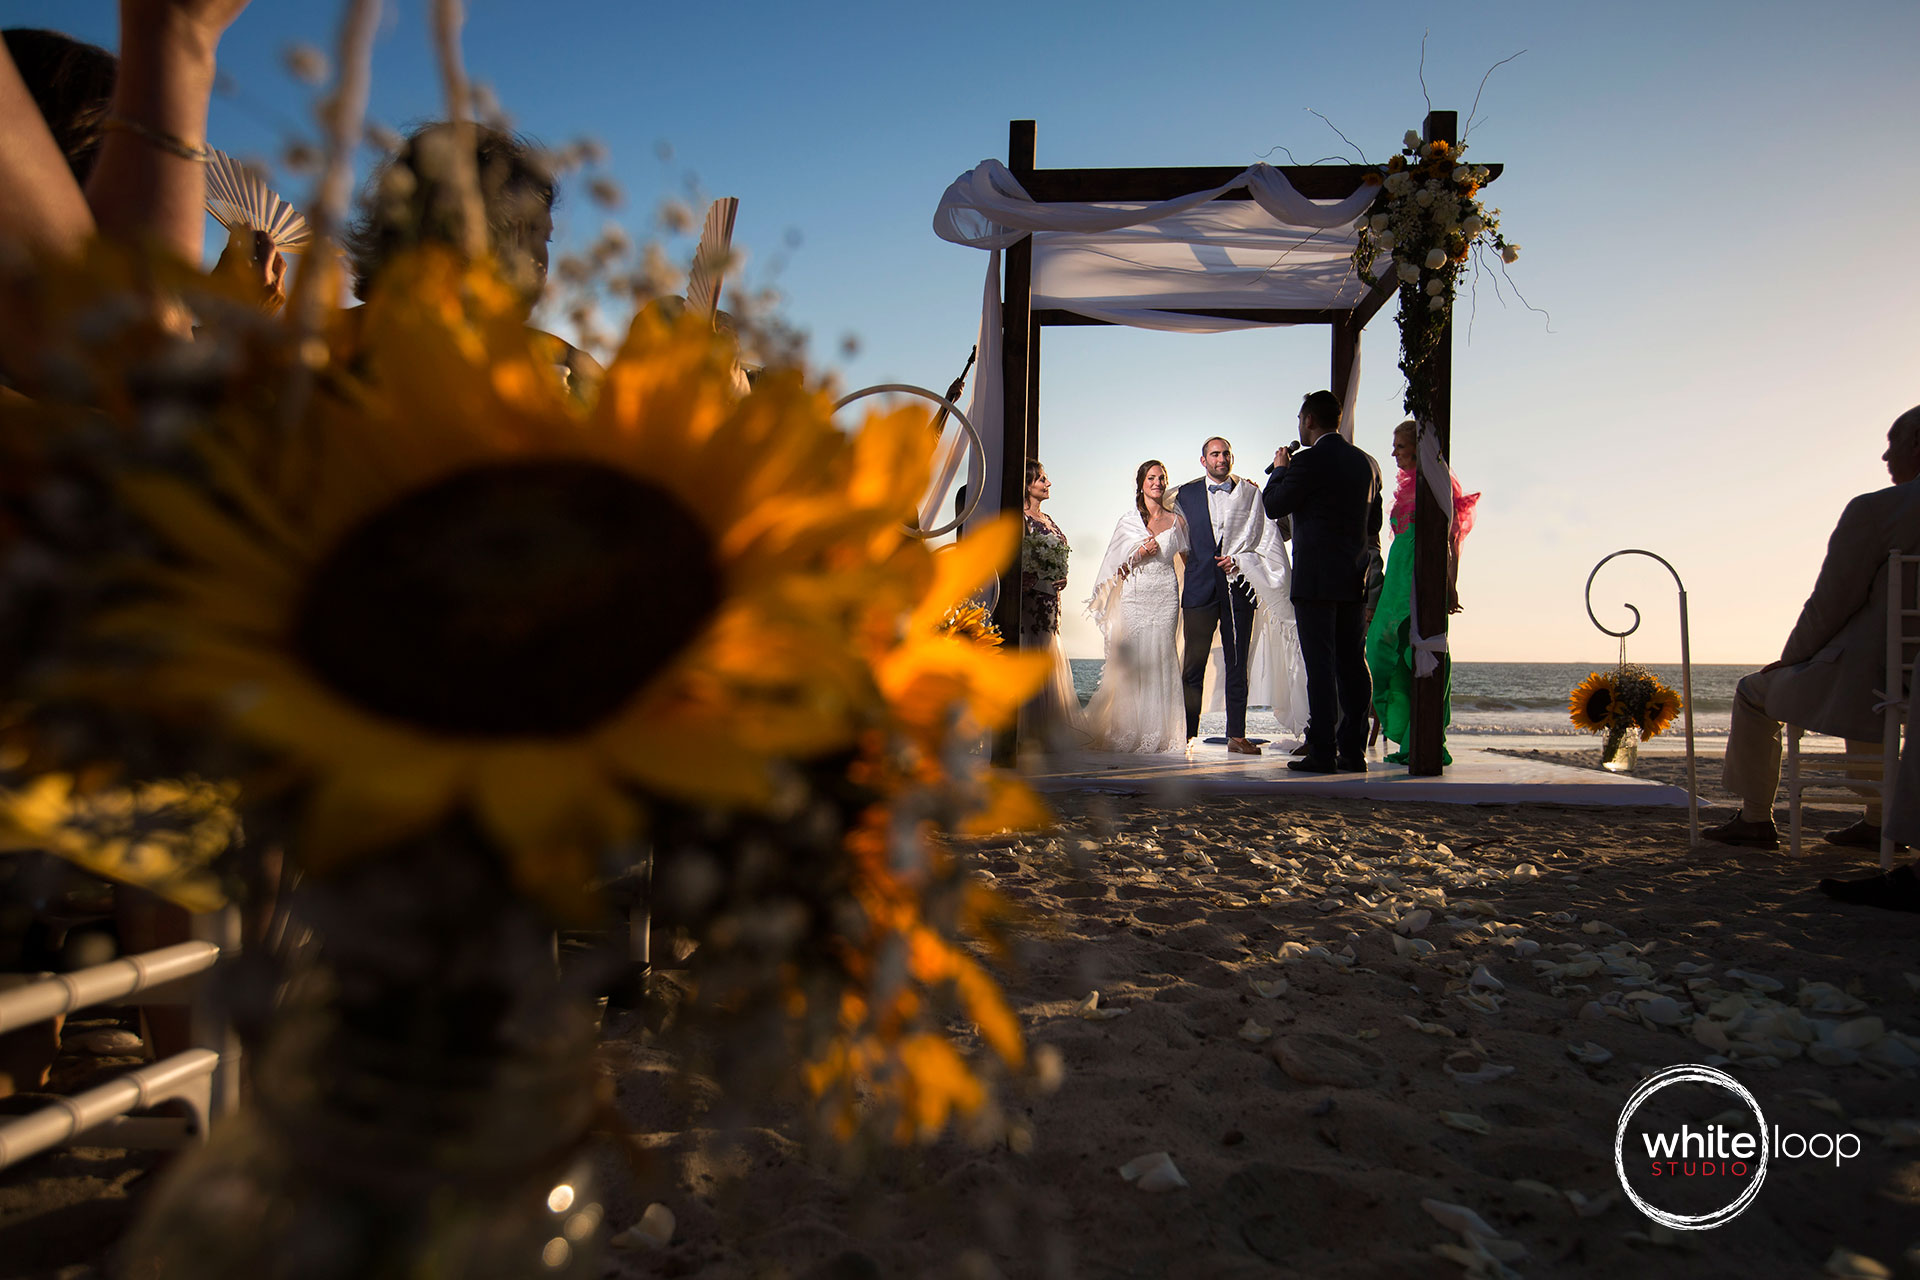 Bride and groom captured during an important moment of the Jewish Ceremony taking place on the beach during the sunset